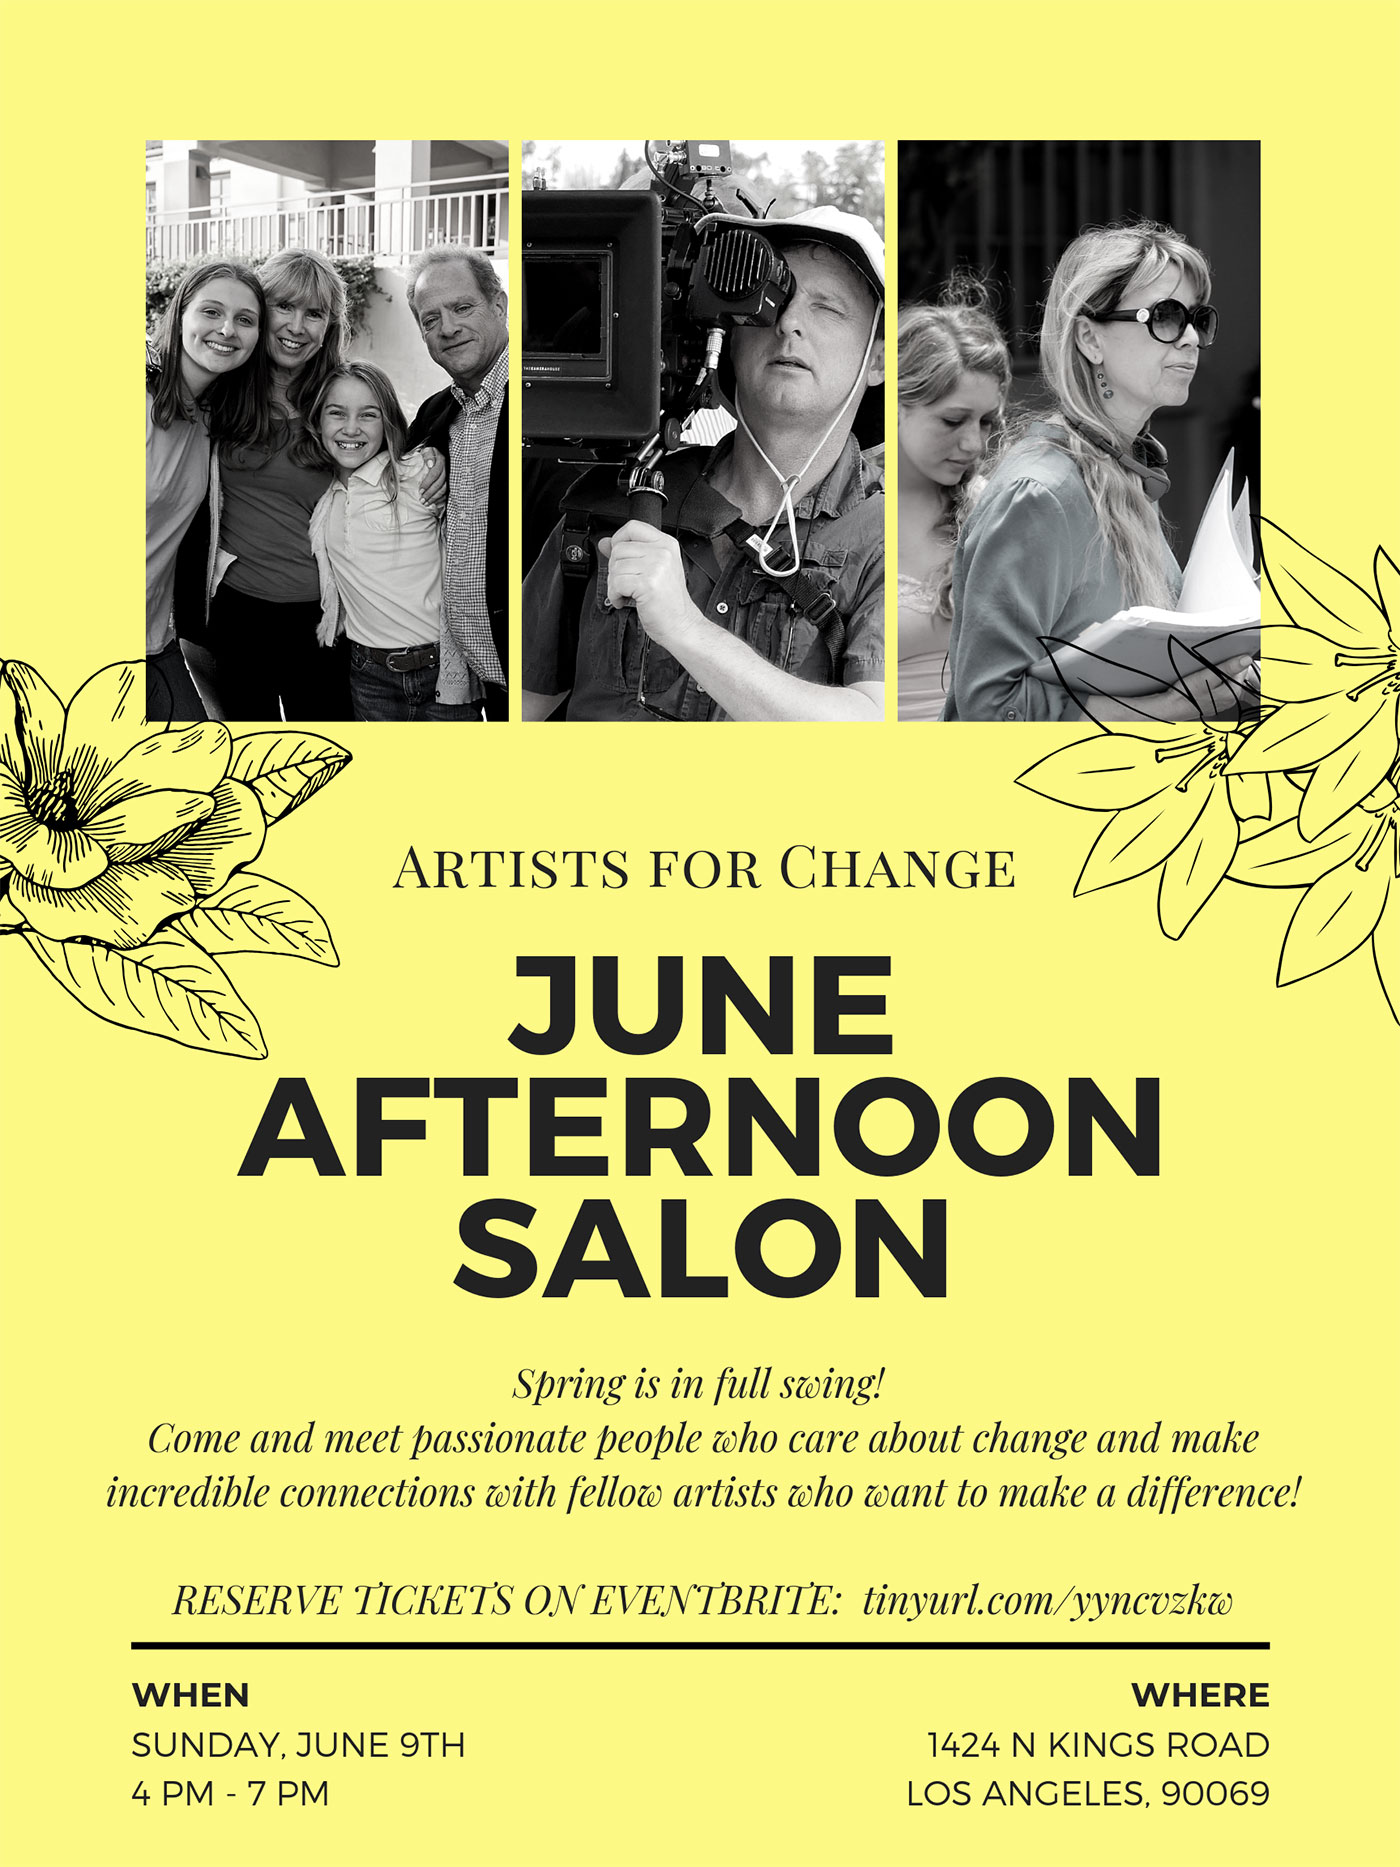 June Afternoon Salon